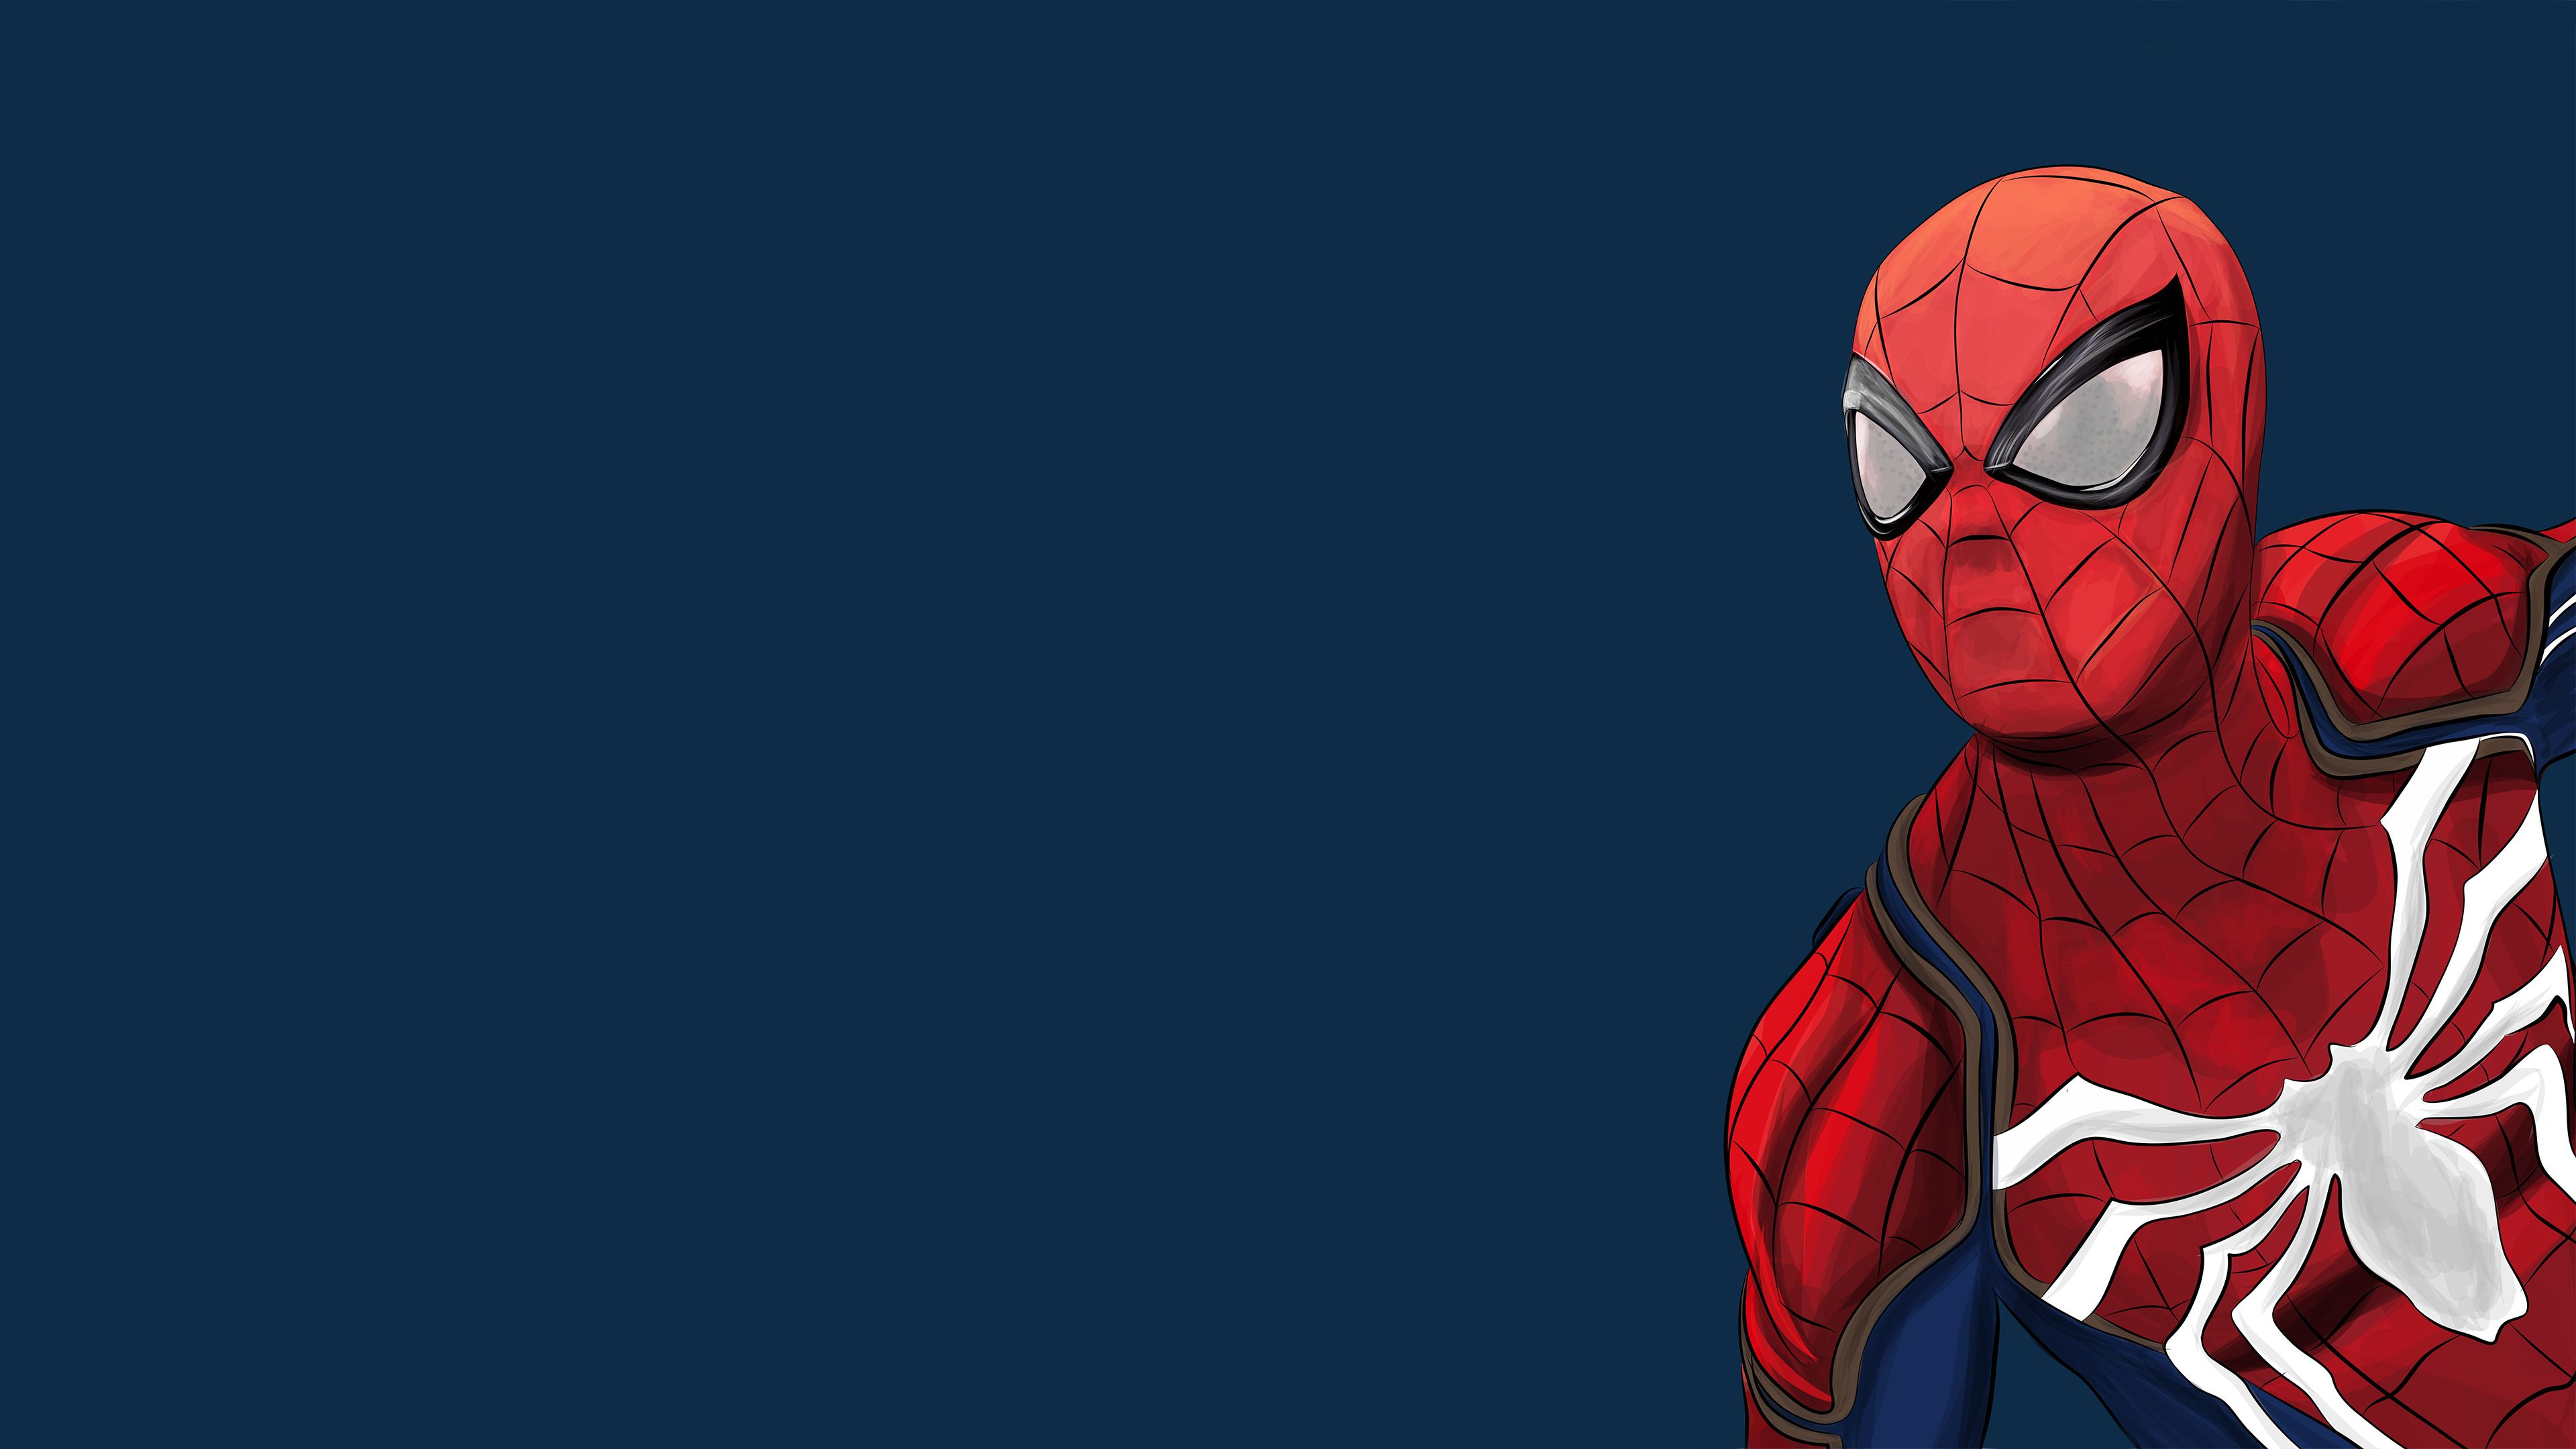 Spiderman Ps4 Artwork 4k 2018 superheroes wallpapers